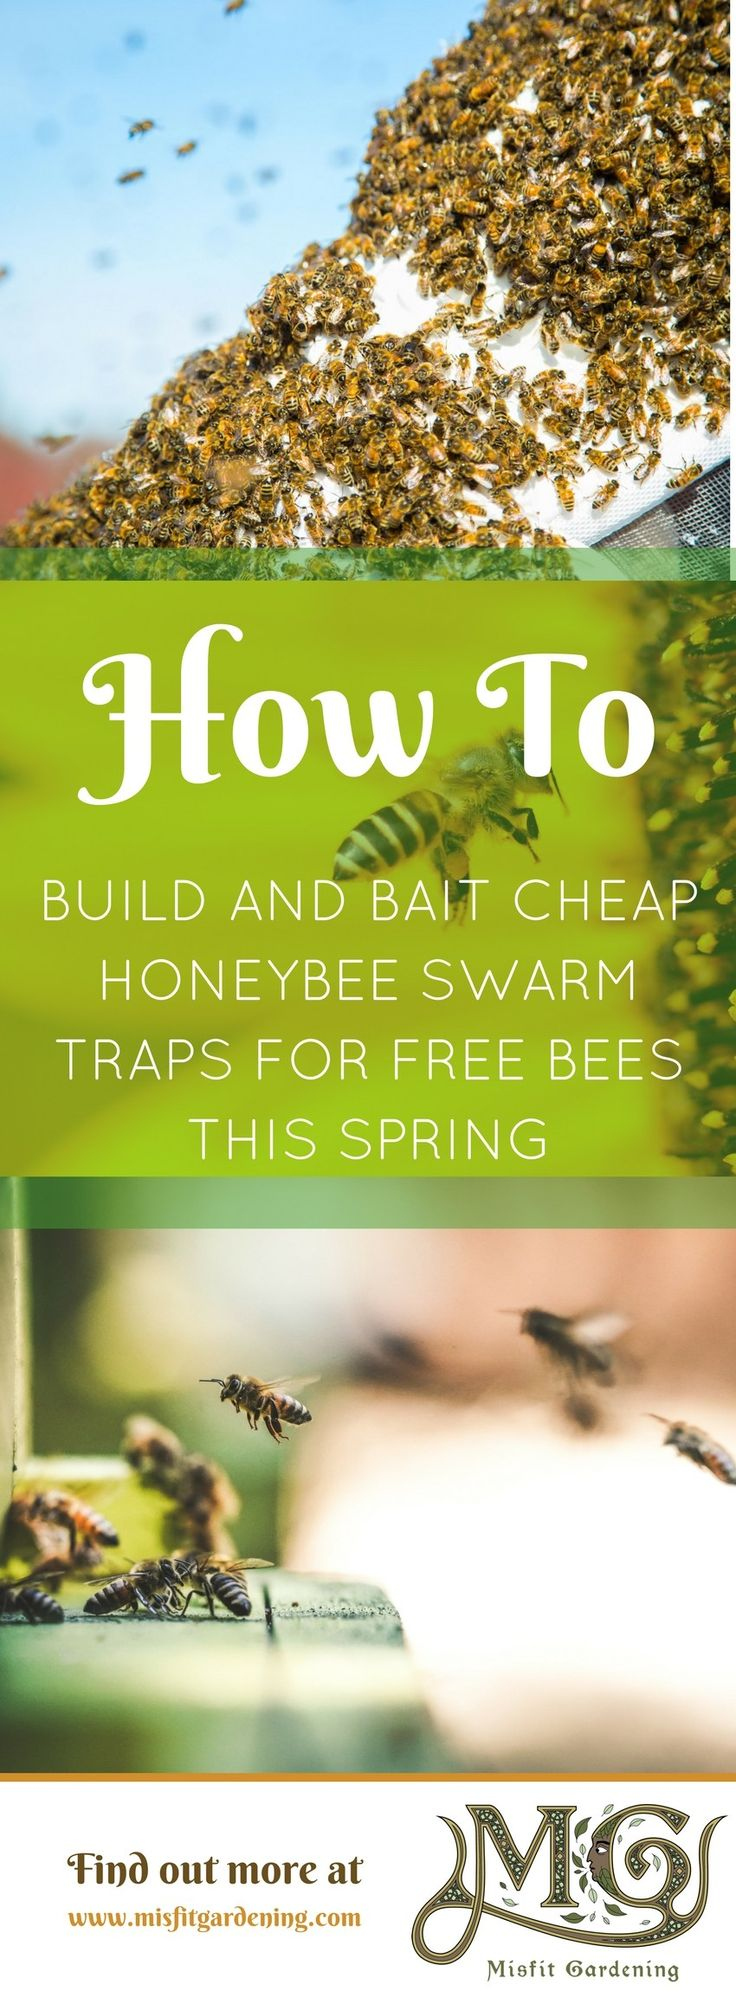 How to cheaply build bee swarm traps. Click to find out how to build and bait a trap for a free honeybee swarm or pin it for later